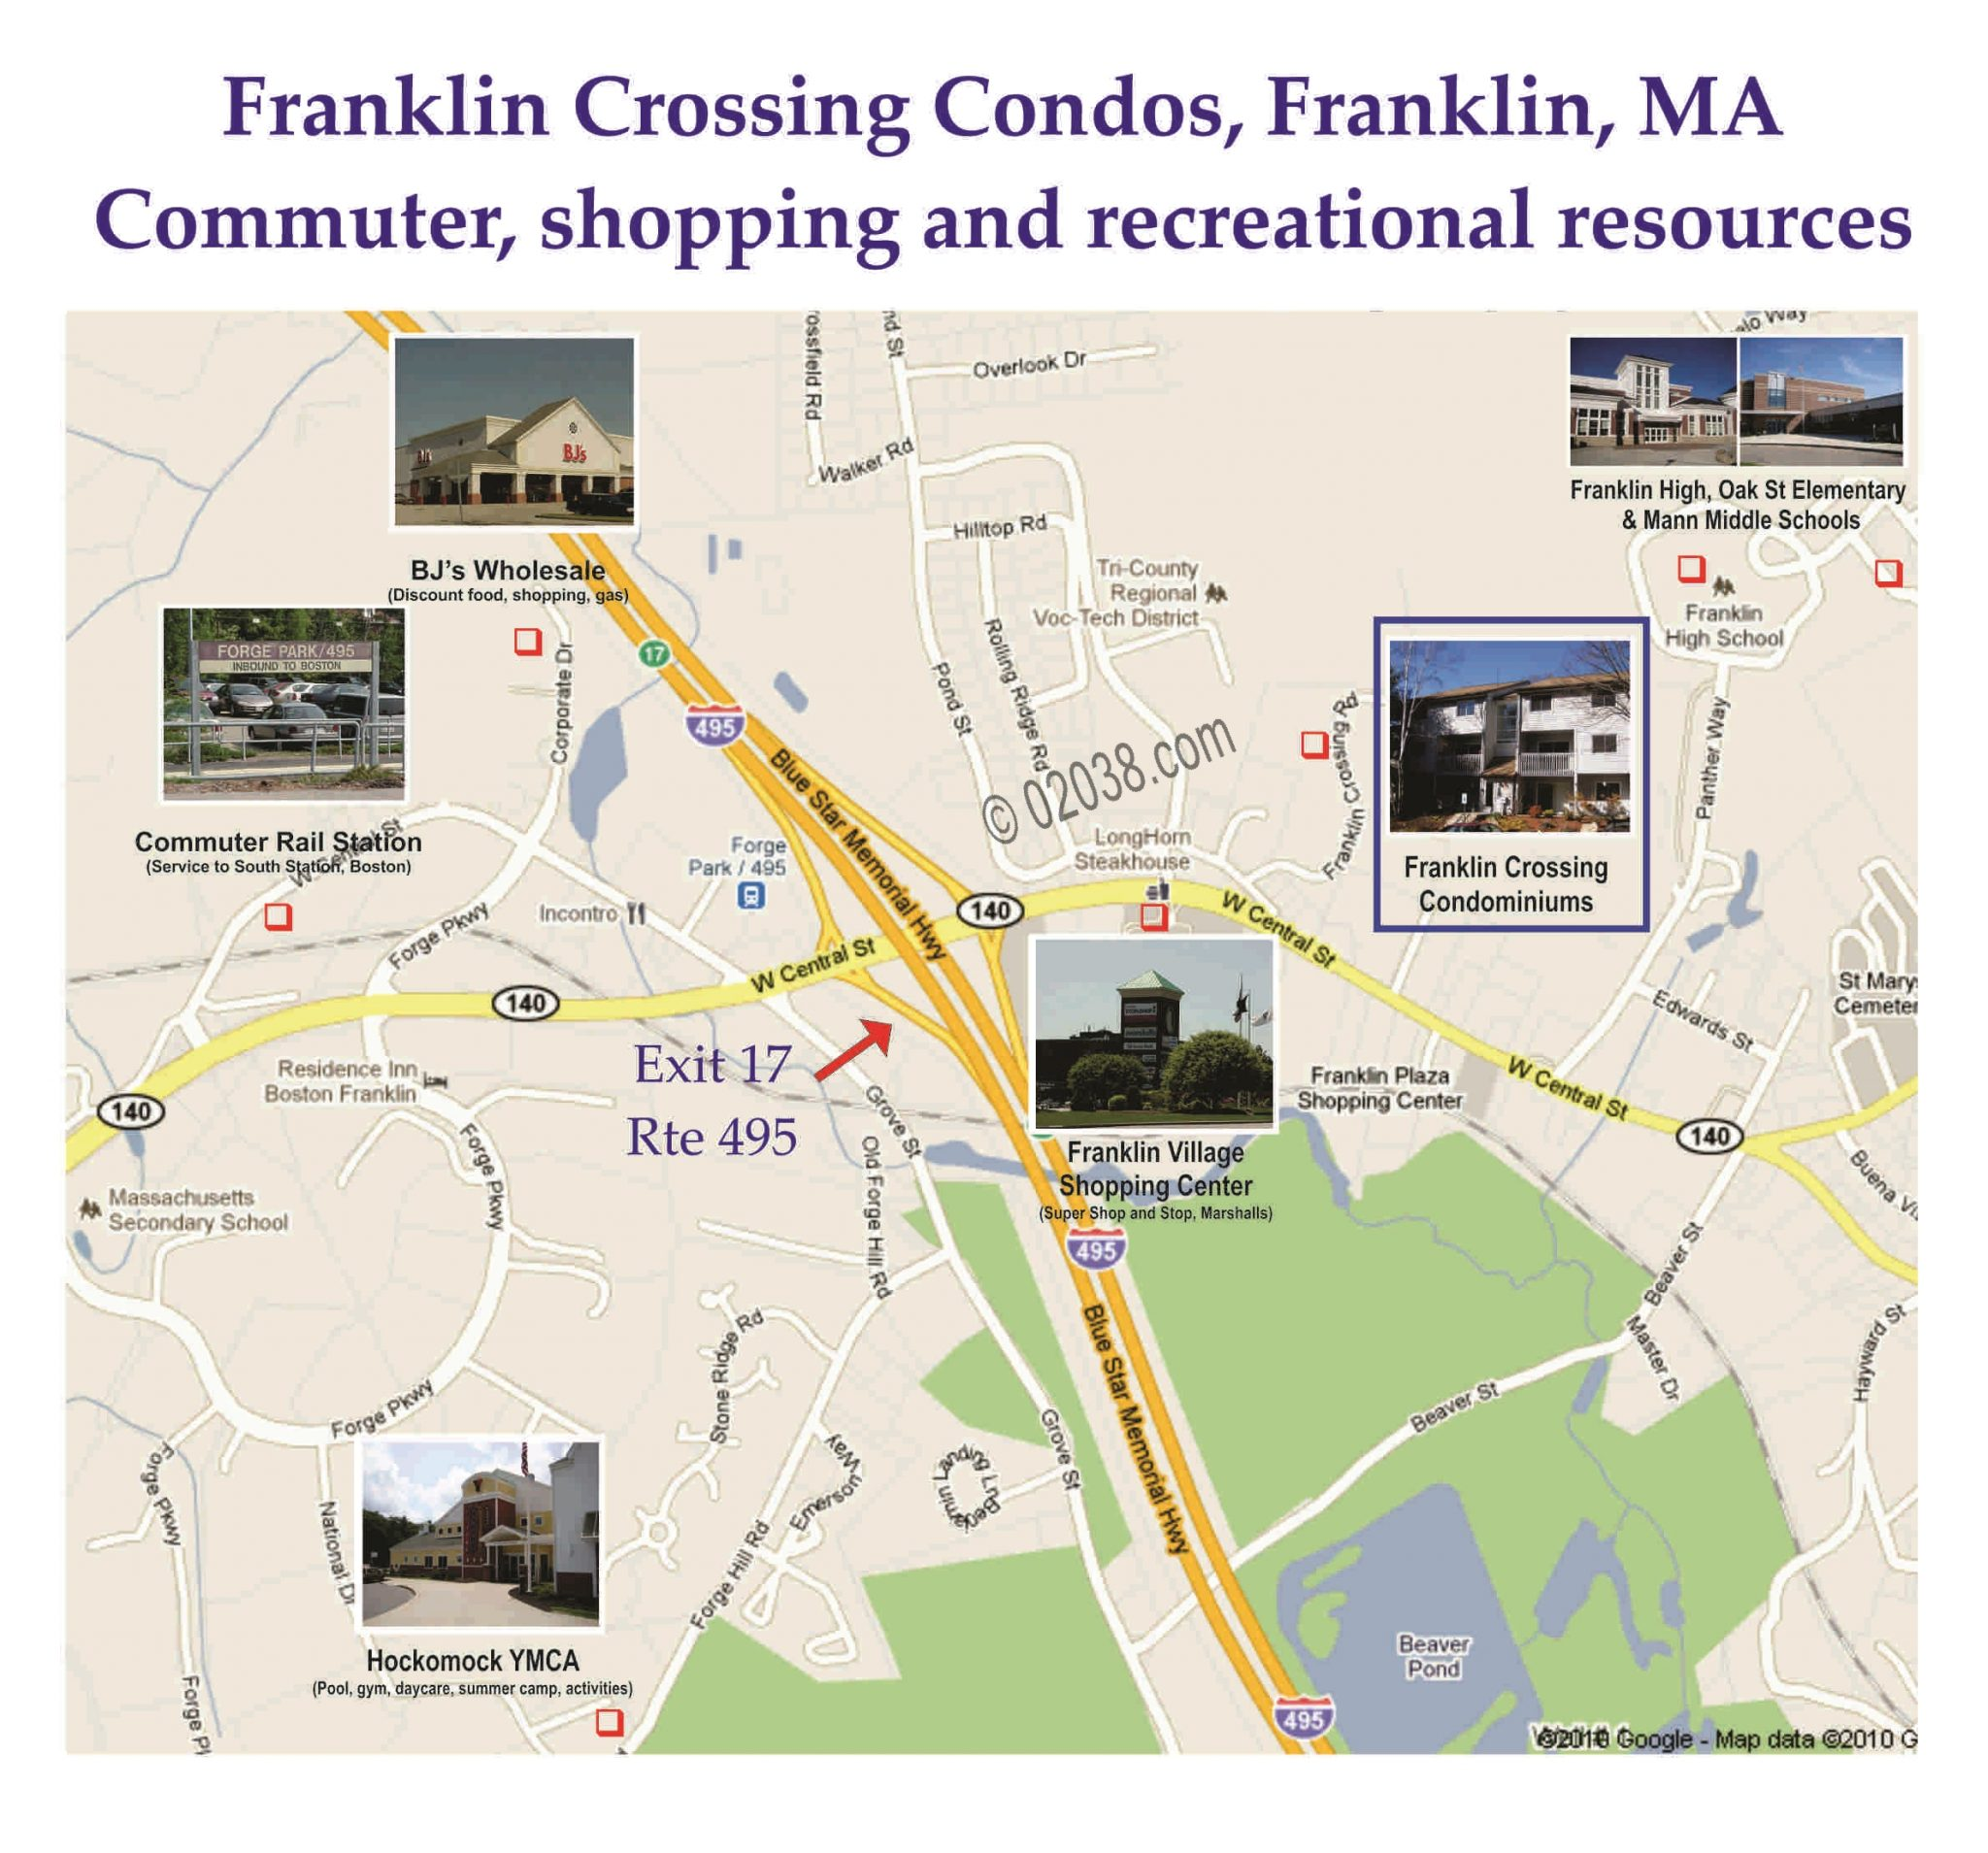 ranklin crossing franklin ma location